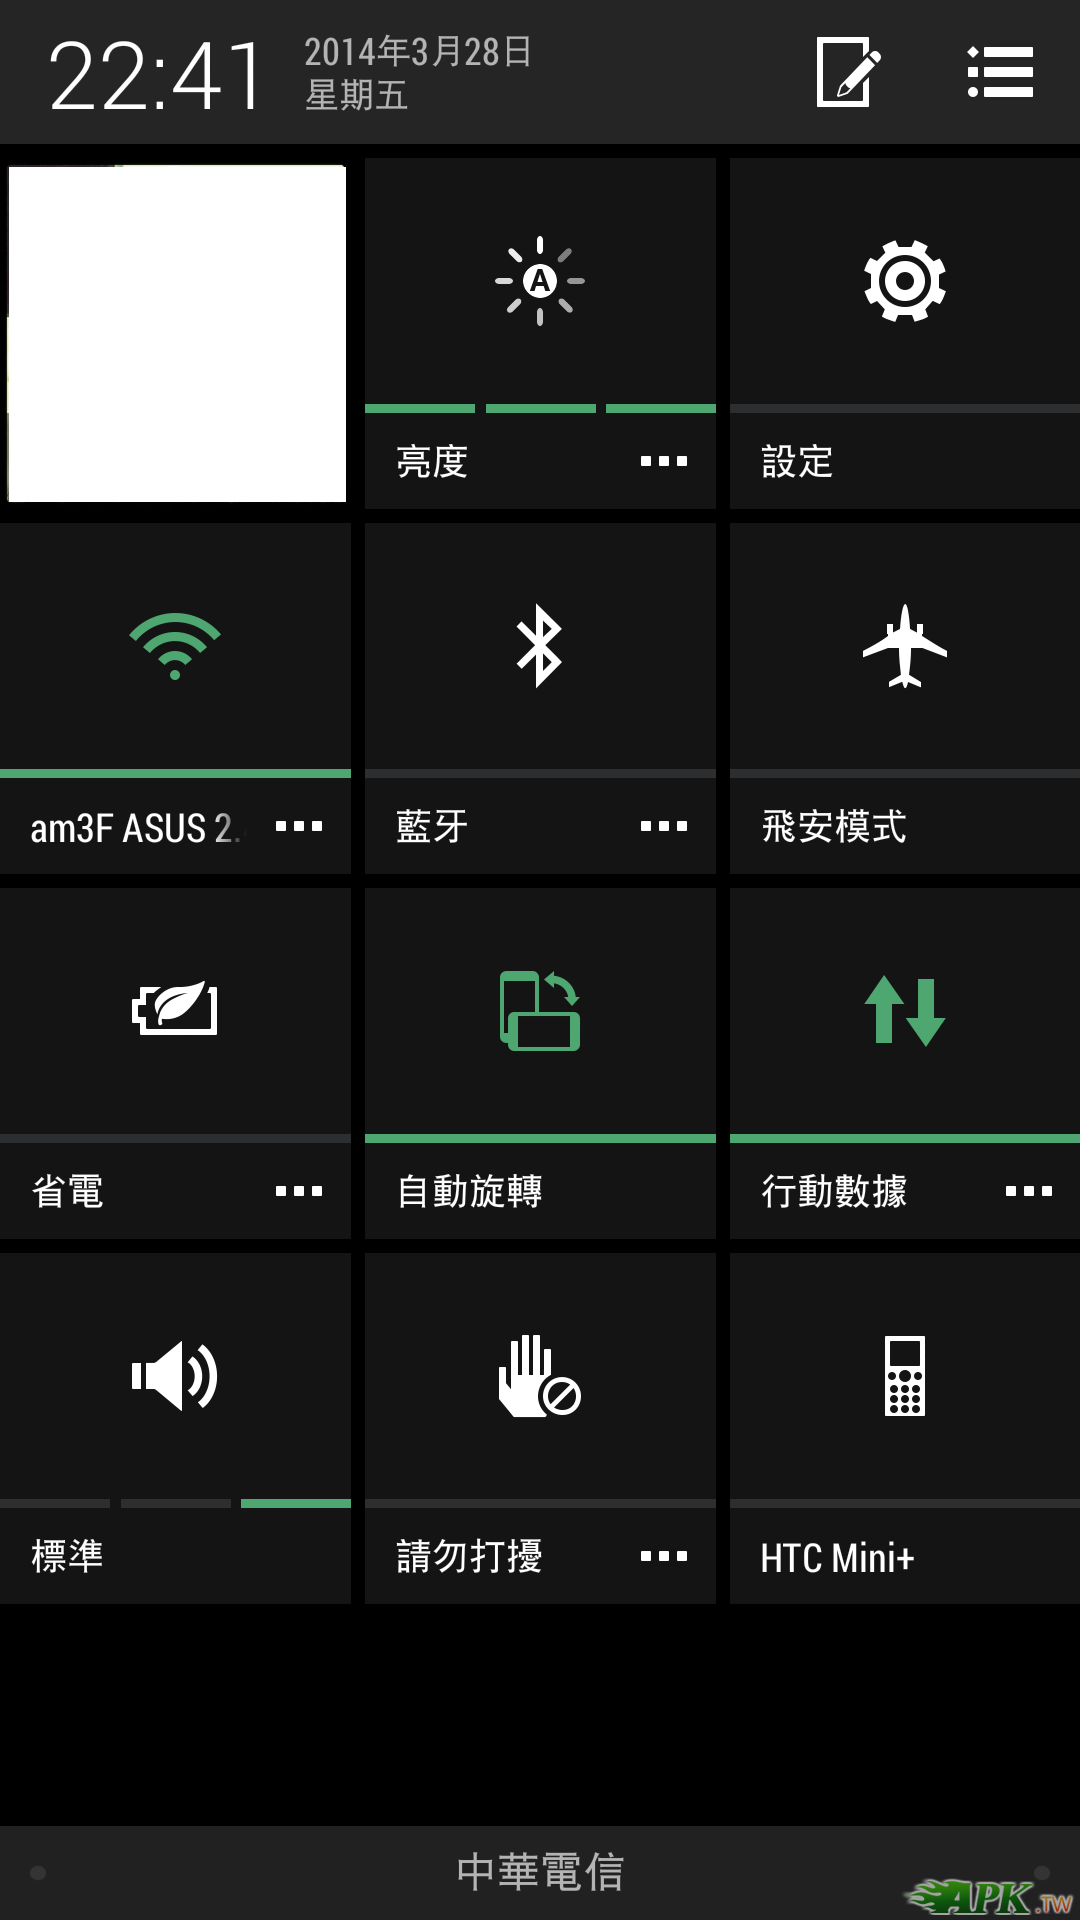 Screenshot_2014-03-28-22-41-10.png